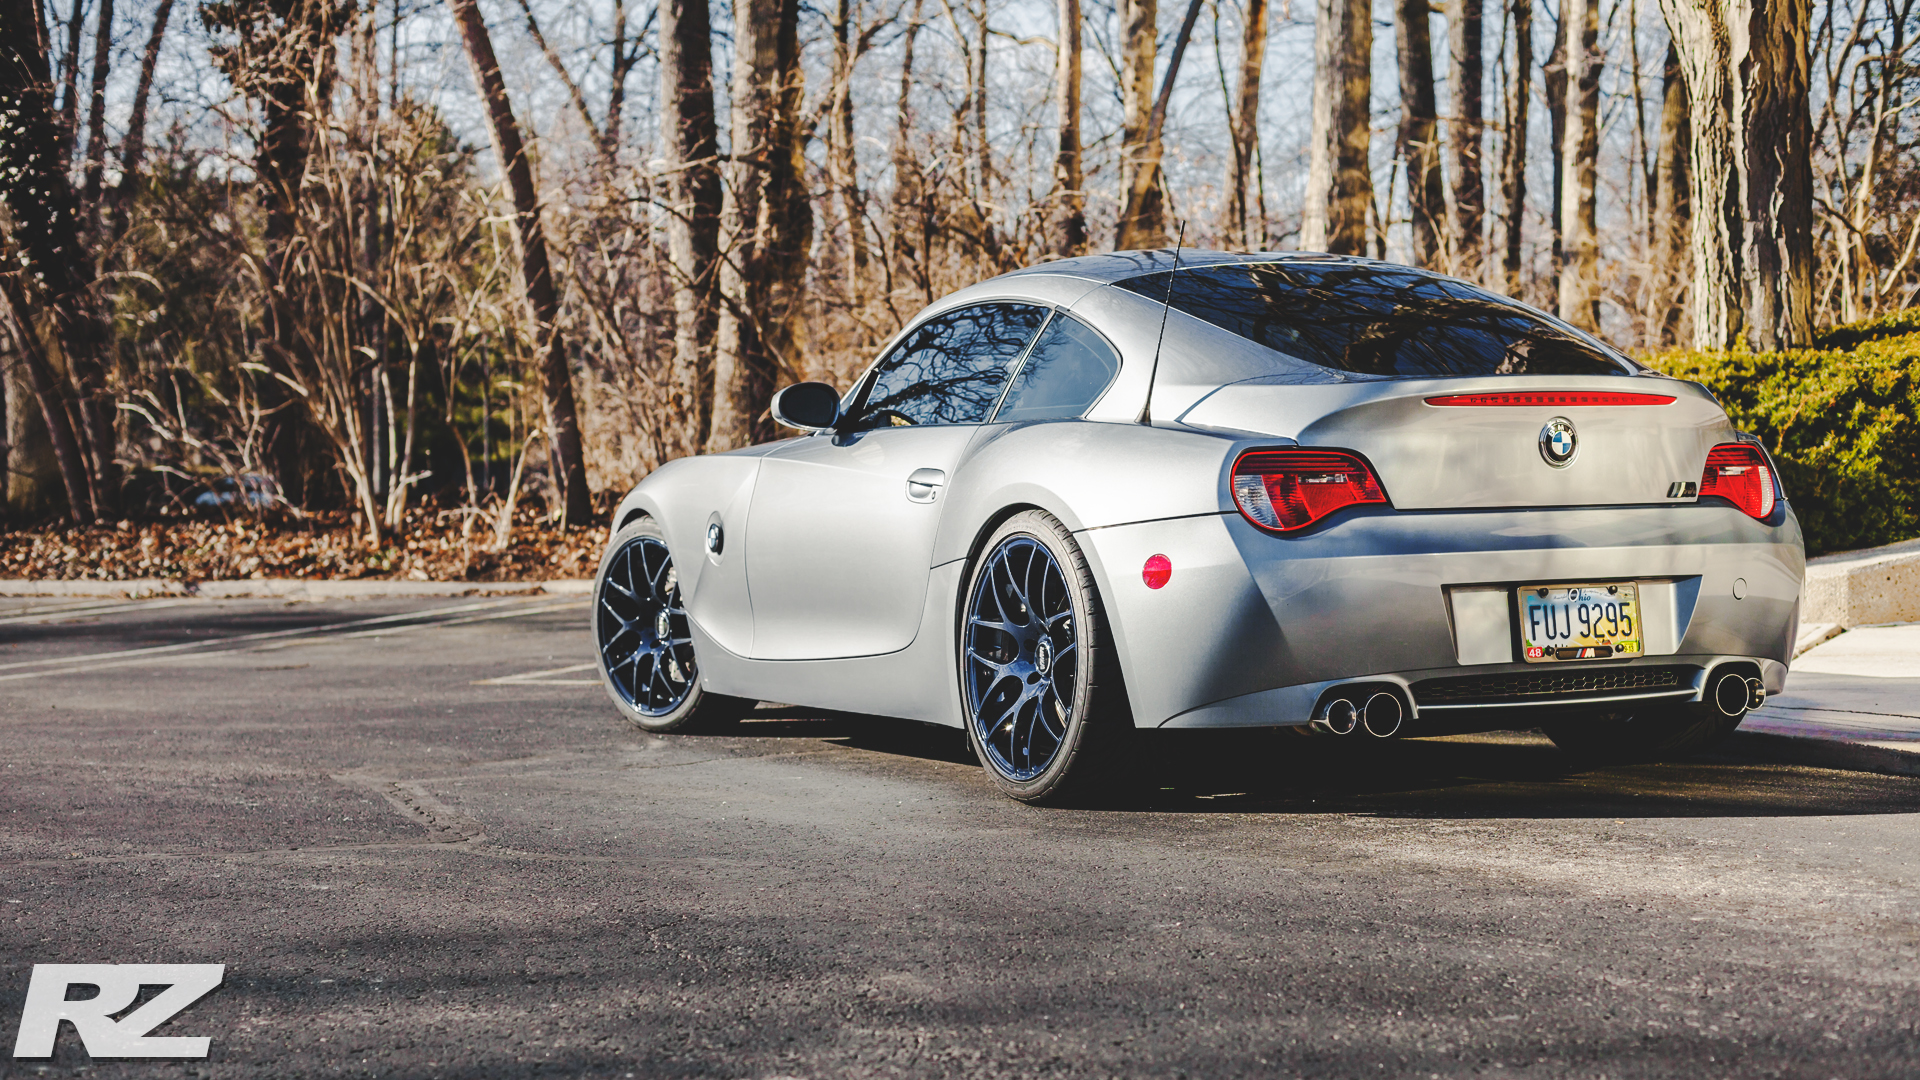 bmw z4 ///m coupe wallpaperspeedx07 on deviantart